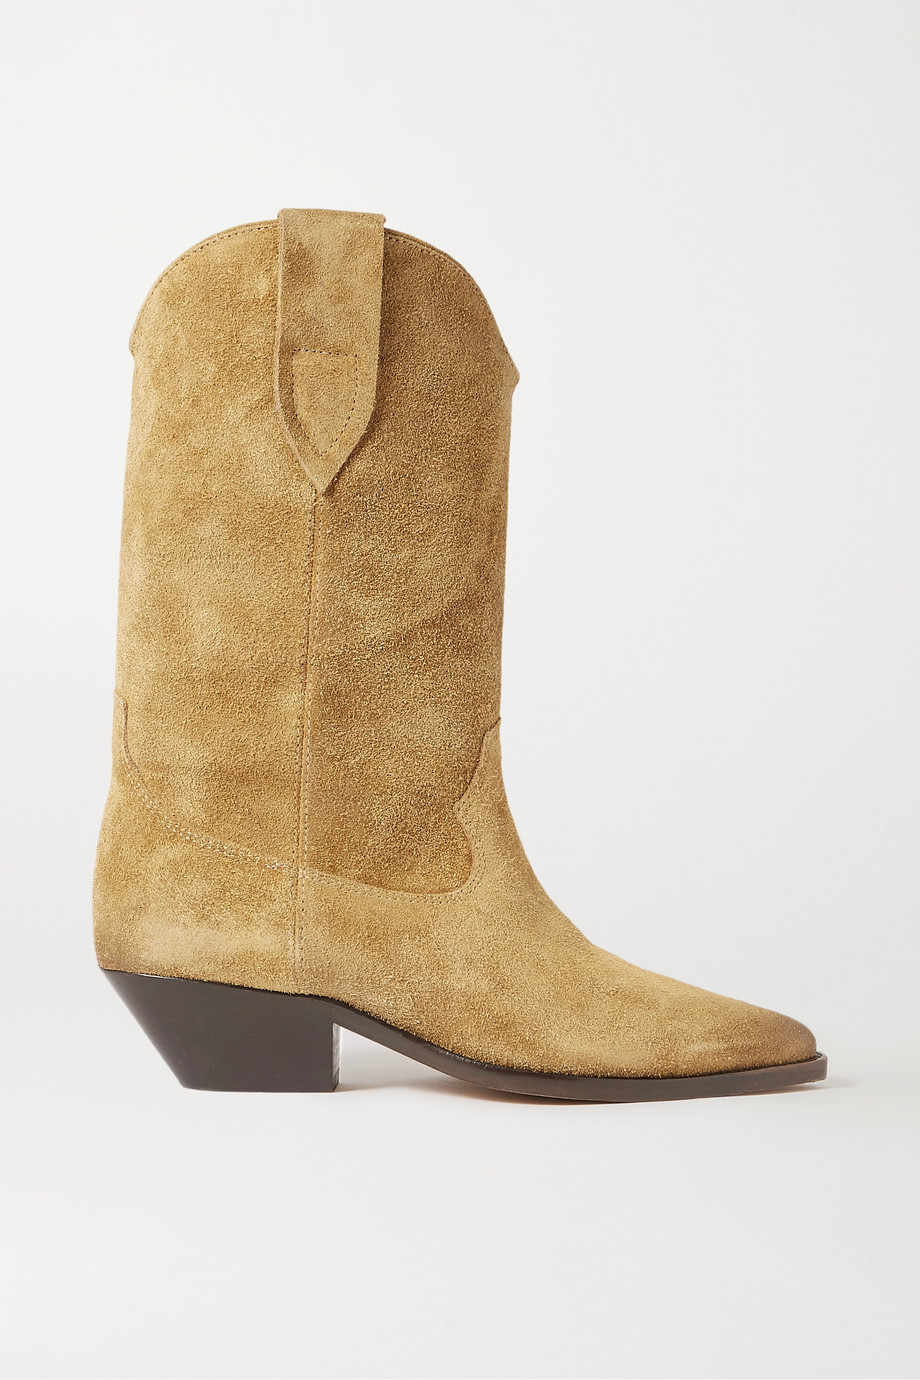 Isabel Marant Duerto suede boots